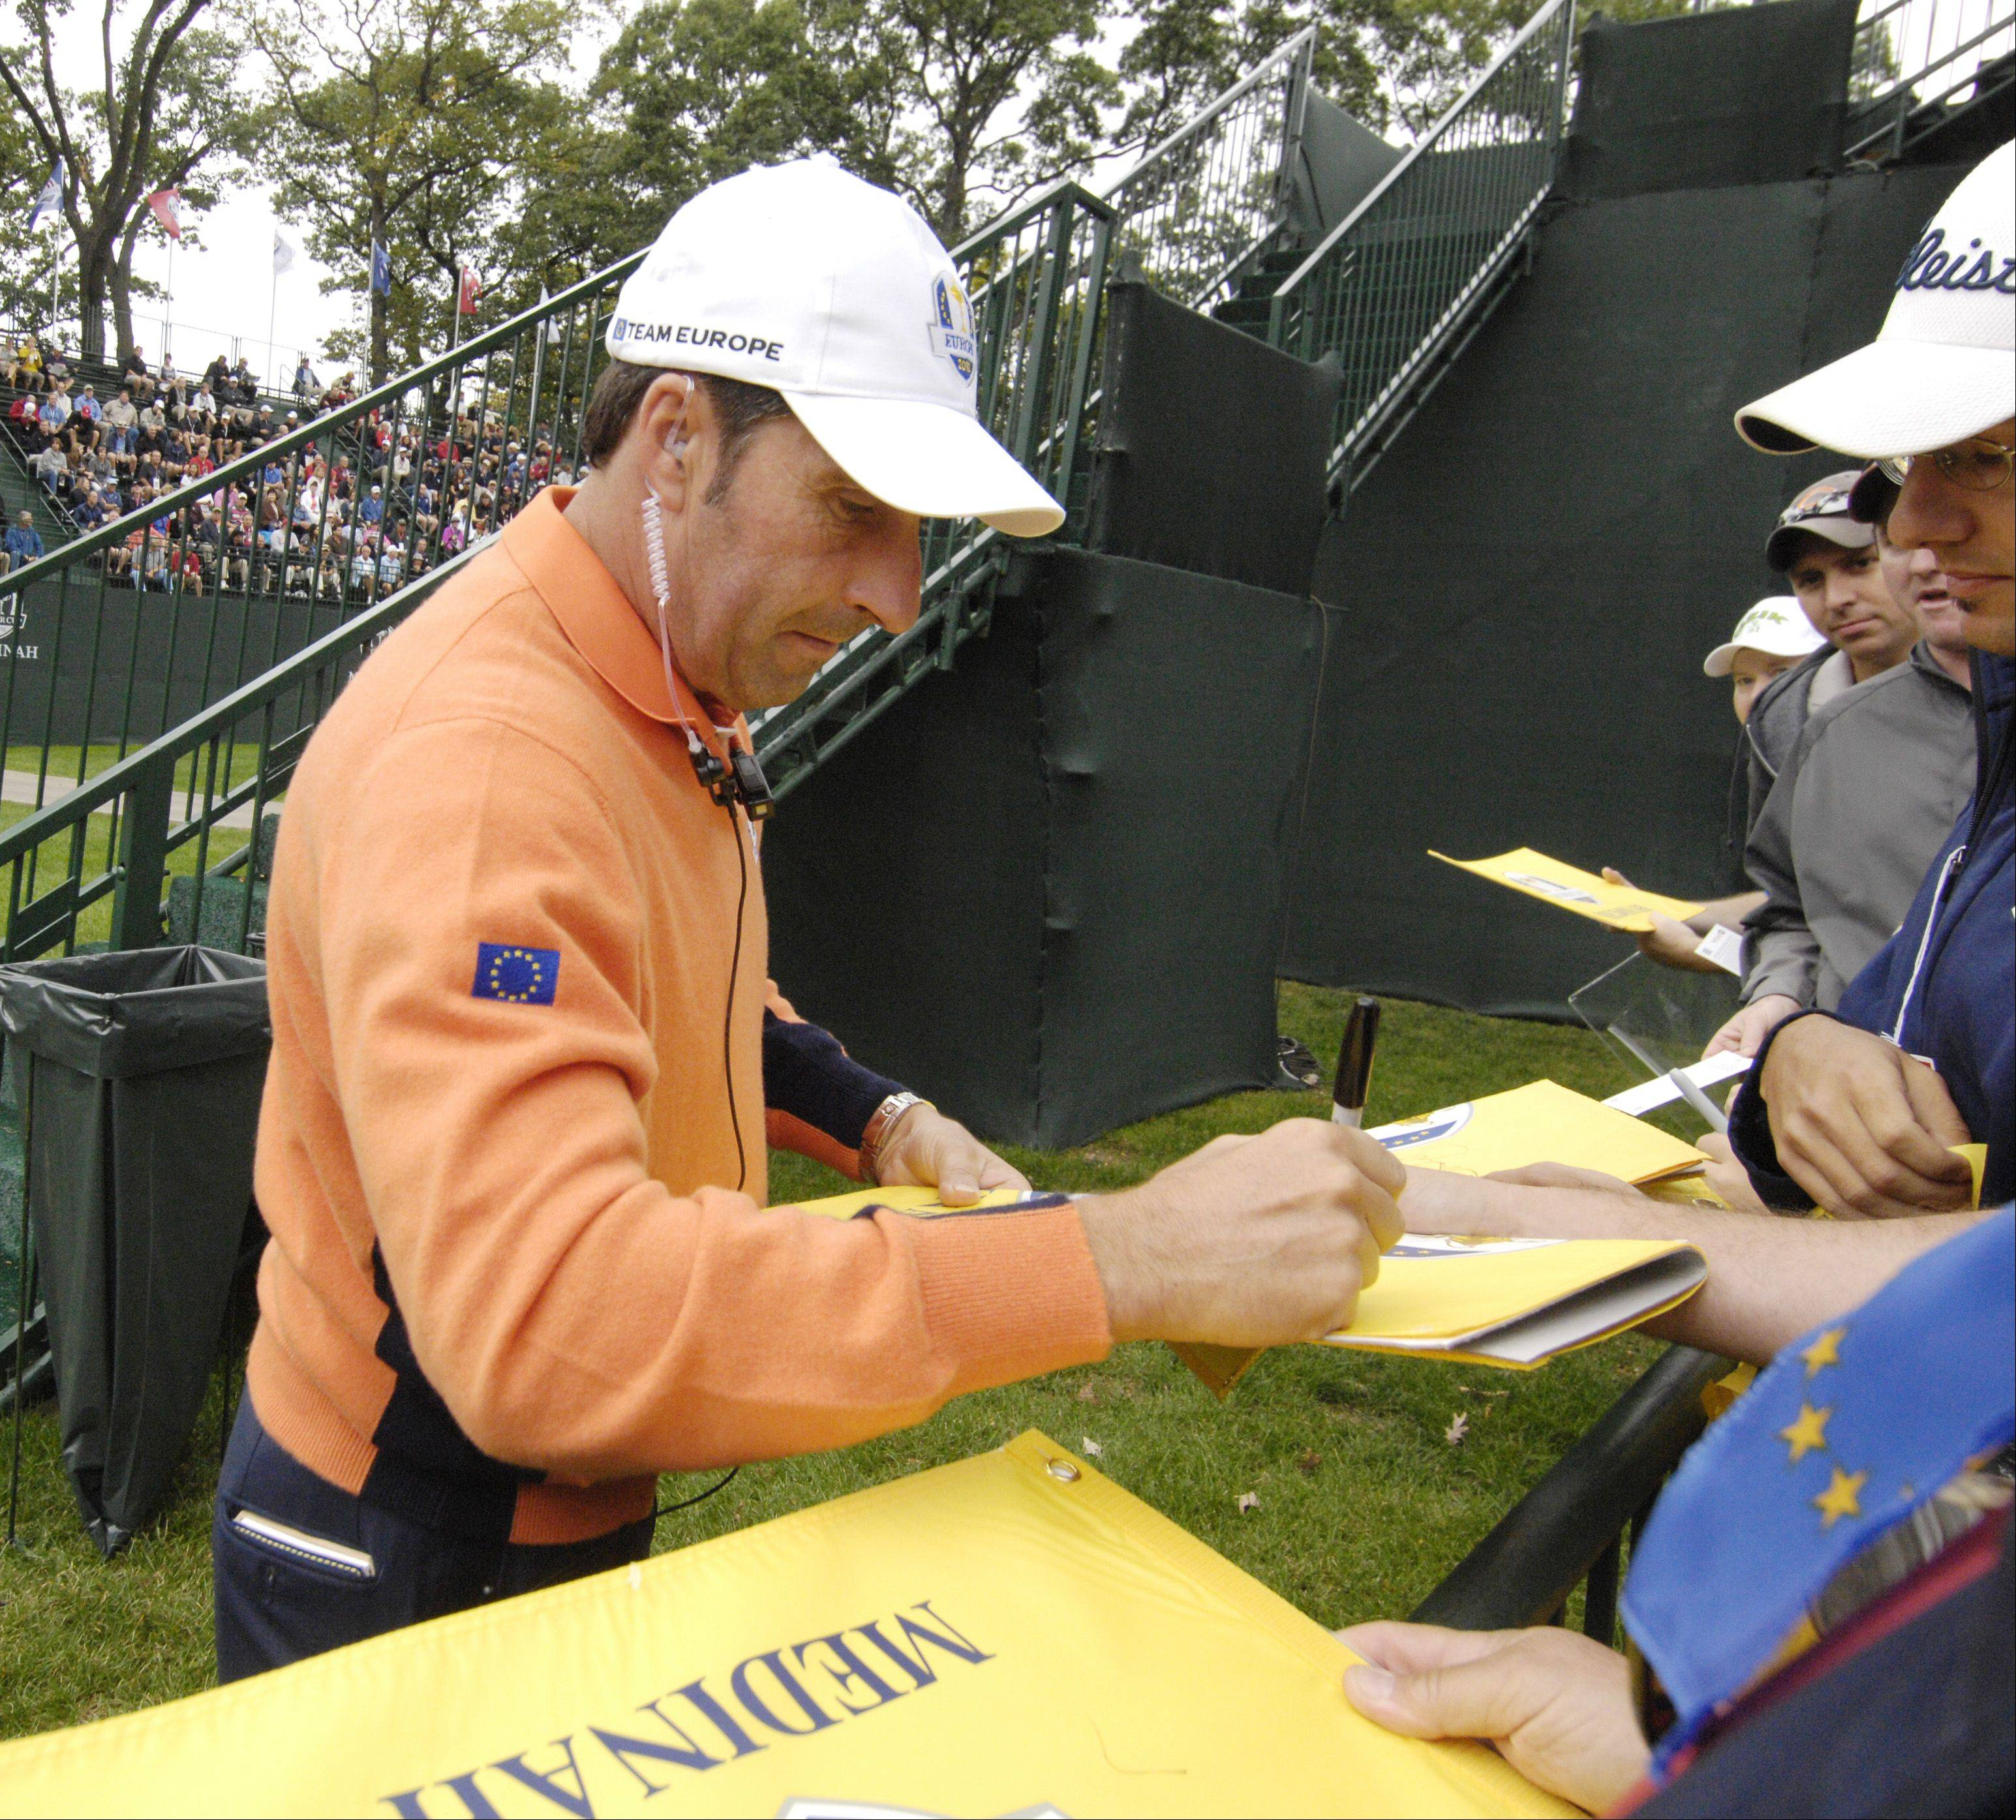 European Ryder Cup Team captain Jose Maria Olazabal signs autographs.